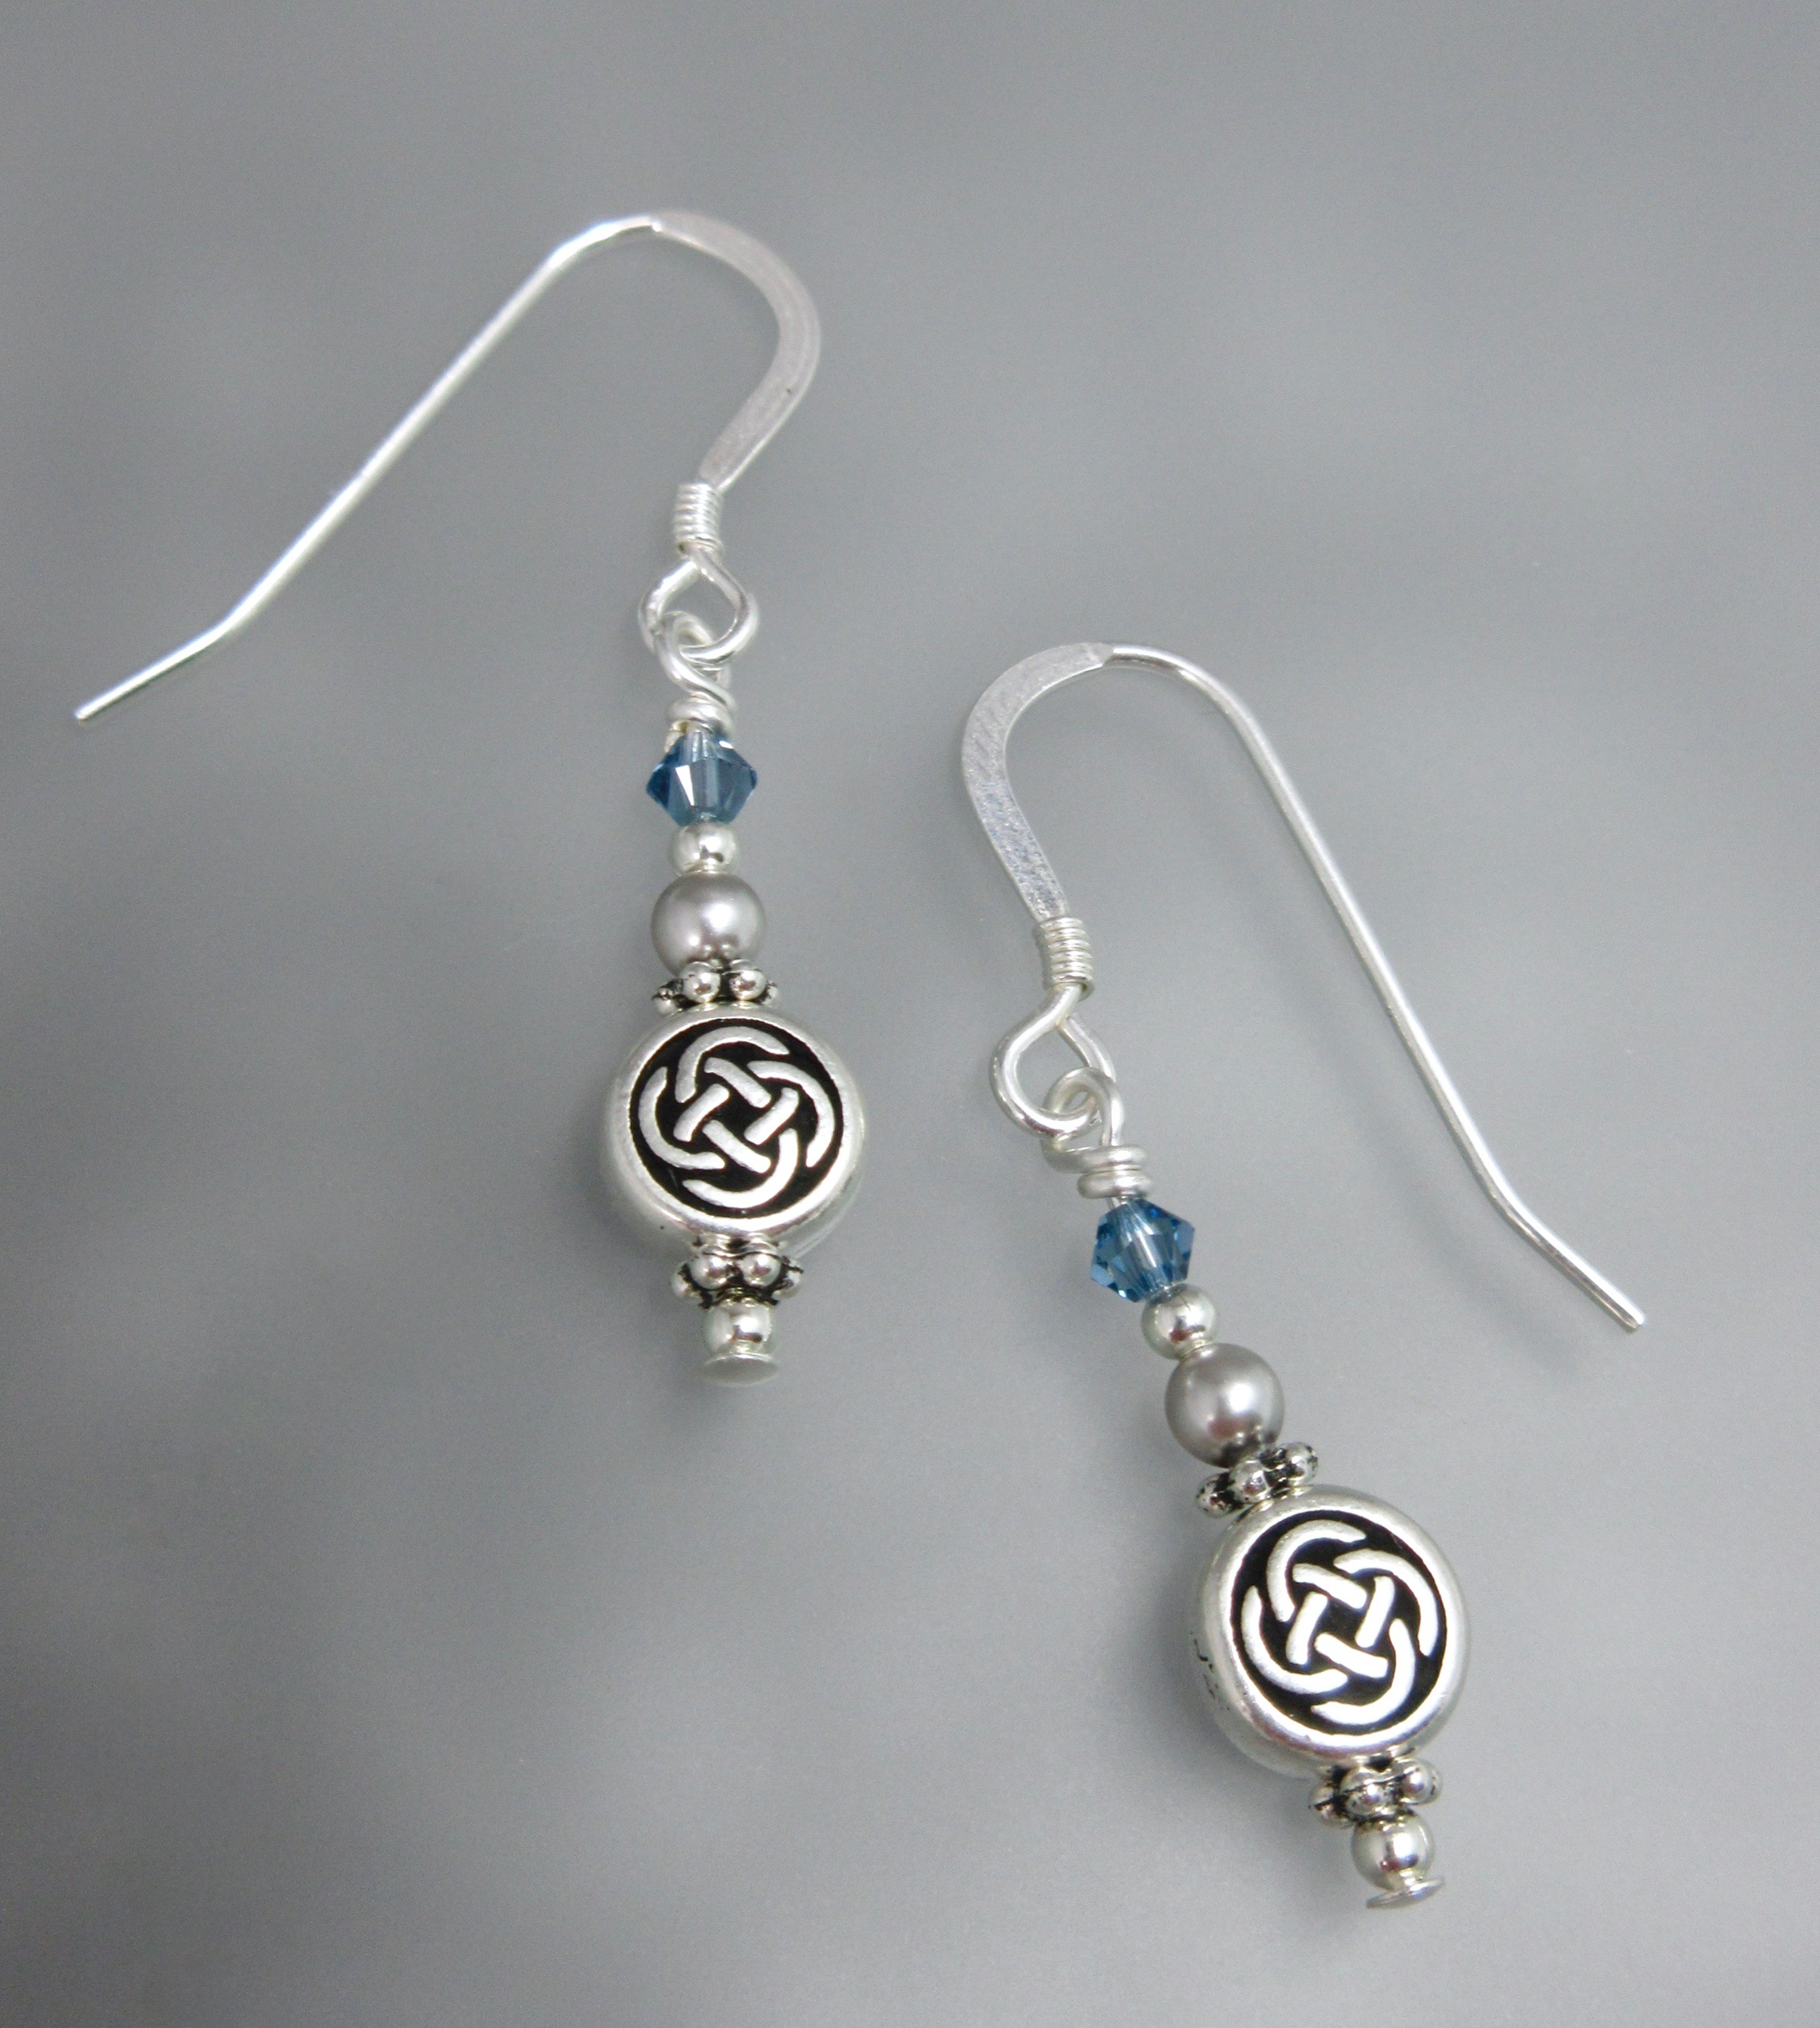 a49add1b4 Celtic Knot Earrings in Night Blue (smaller earrings)